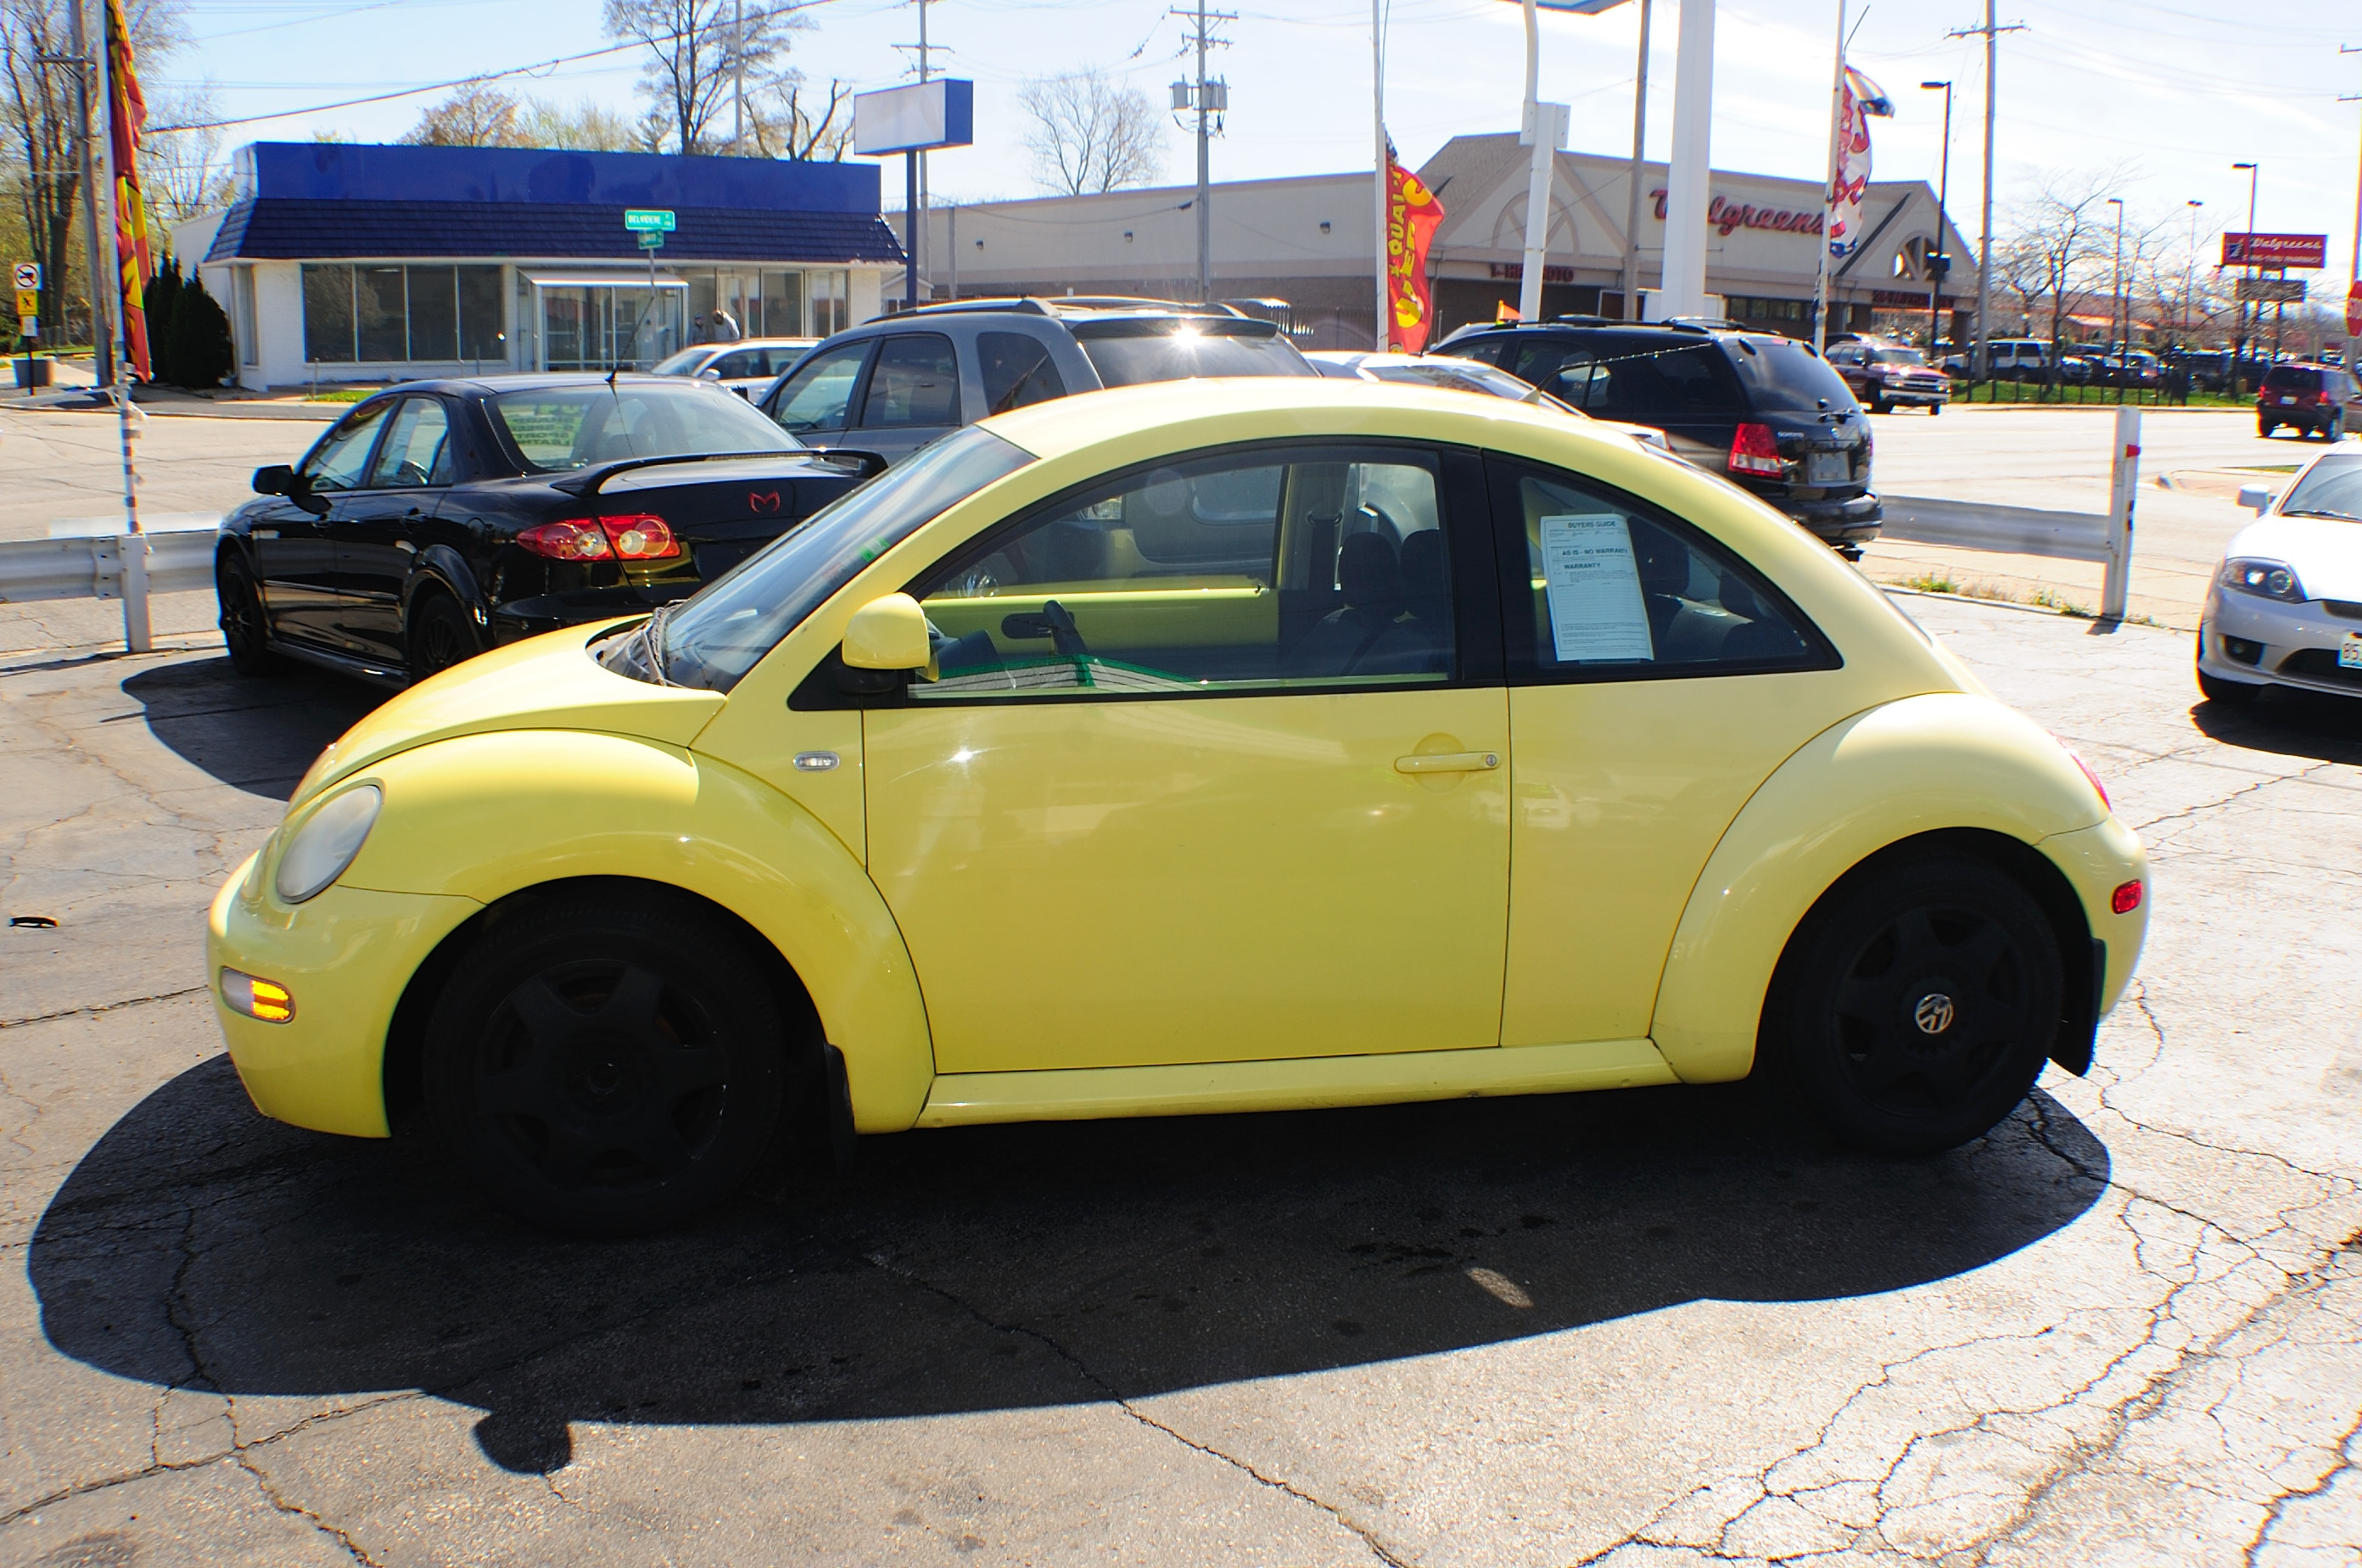 1999 Volkswagen Beetle Yellow Manual used car sale Gurnee Kenosha Mchenry